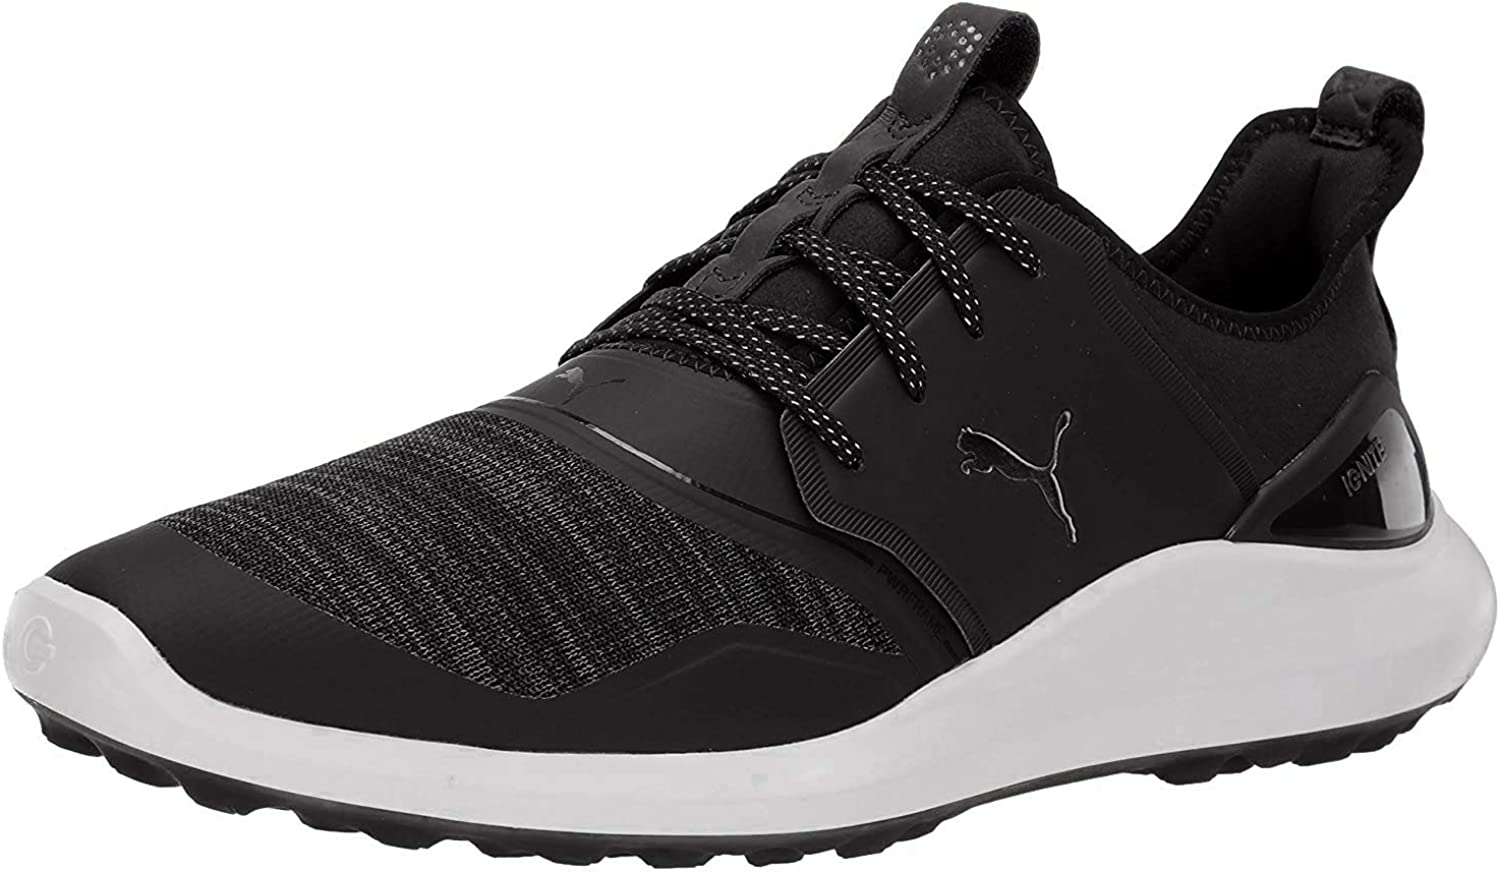 PUMA New color Men's Ignite Complete Free Shipping Nxt Shoe Lace Golf